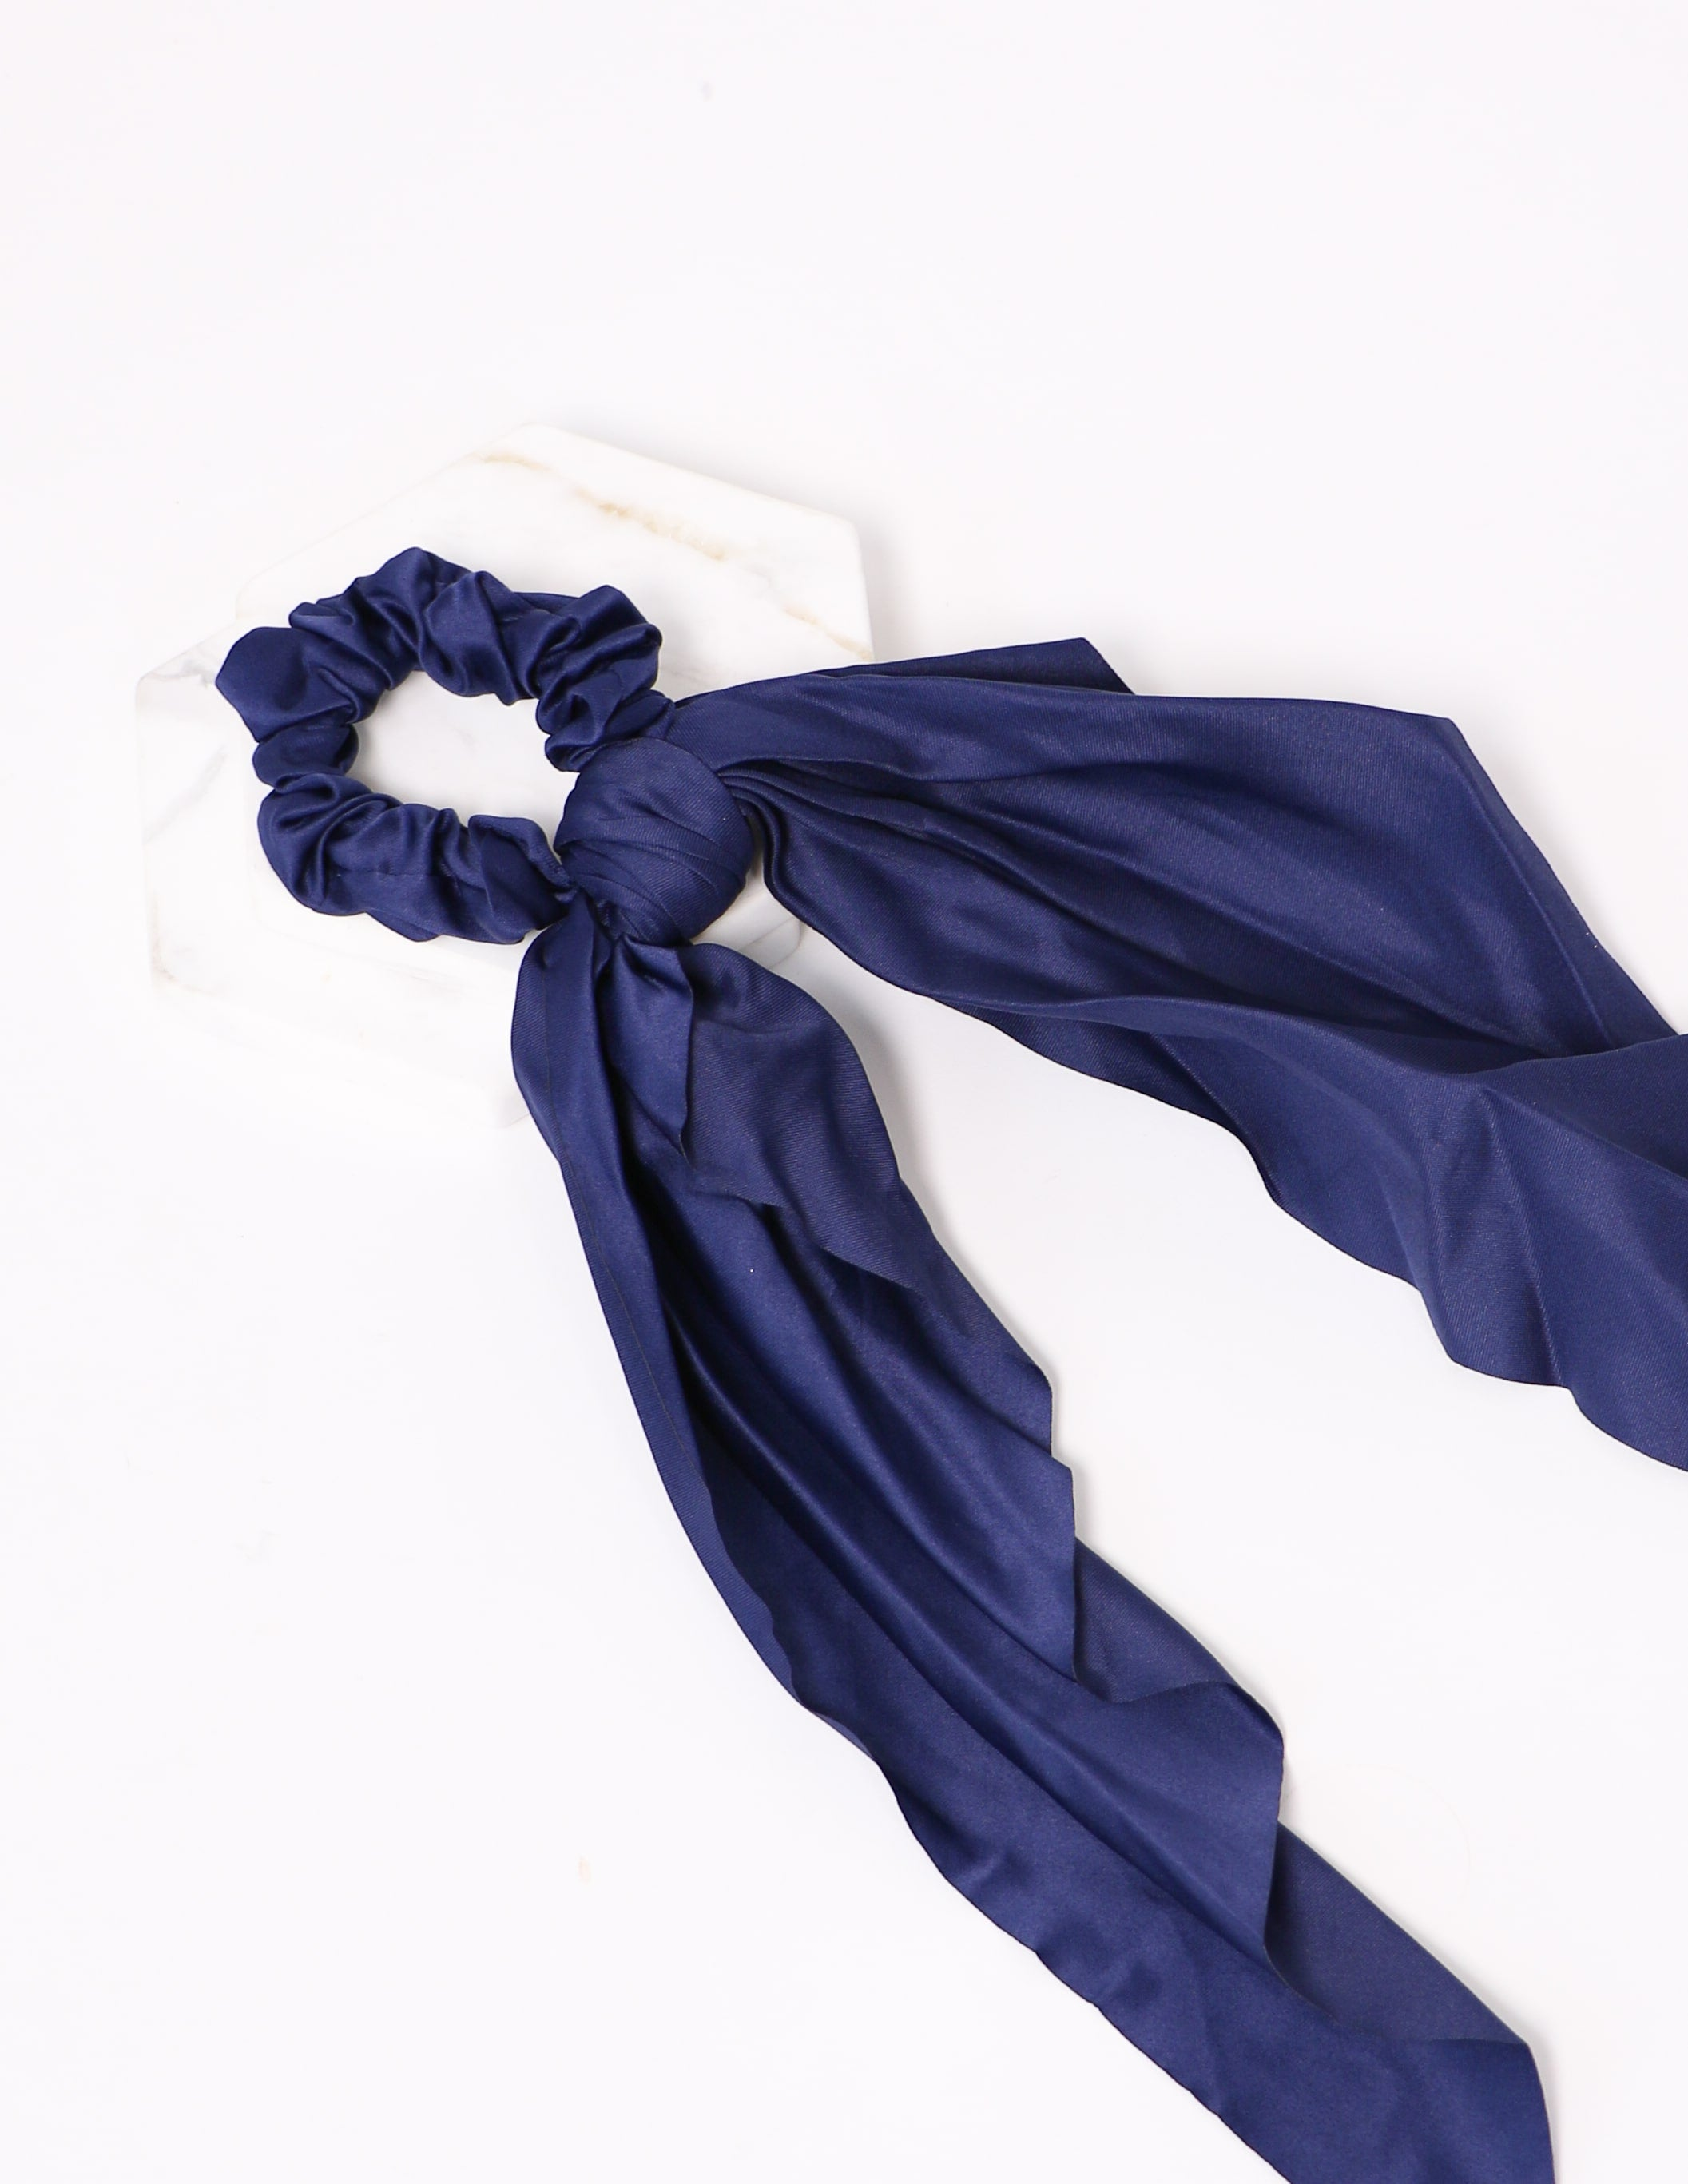 Close up of the tie it up navy ribbon scrunchie on white background